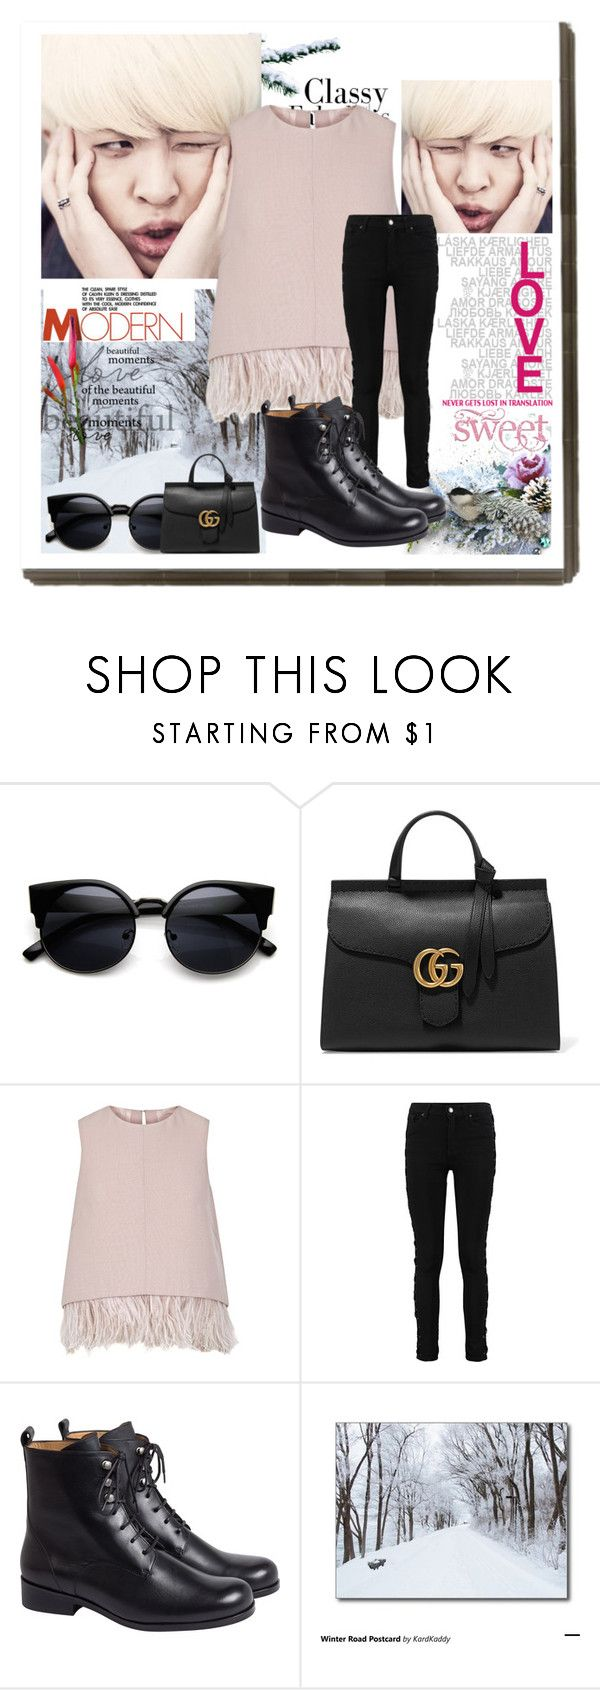 """"""".186"""" by i-love-louis-thetommo-tomlinson on Polyvore featuring Gucci, The 2nd Skin Co., women's clothing, women's fashion, women, female, woman, misses and juniors"""